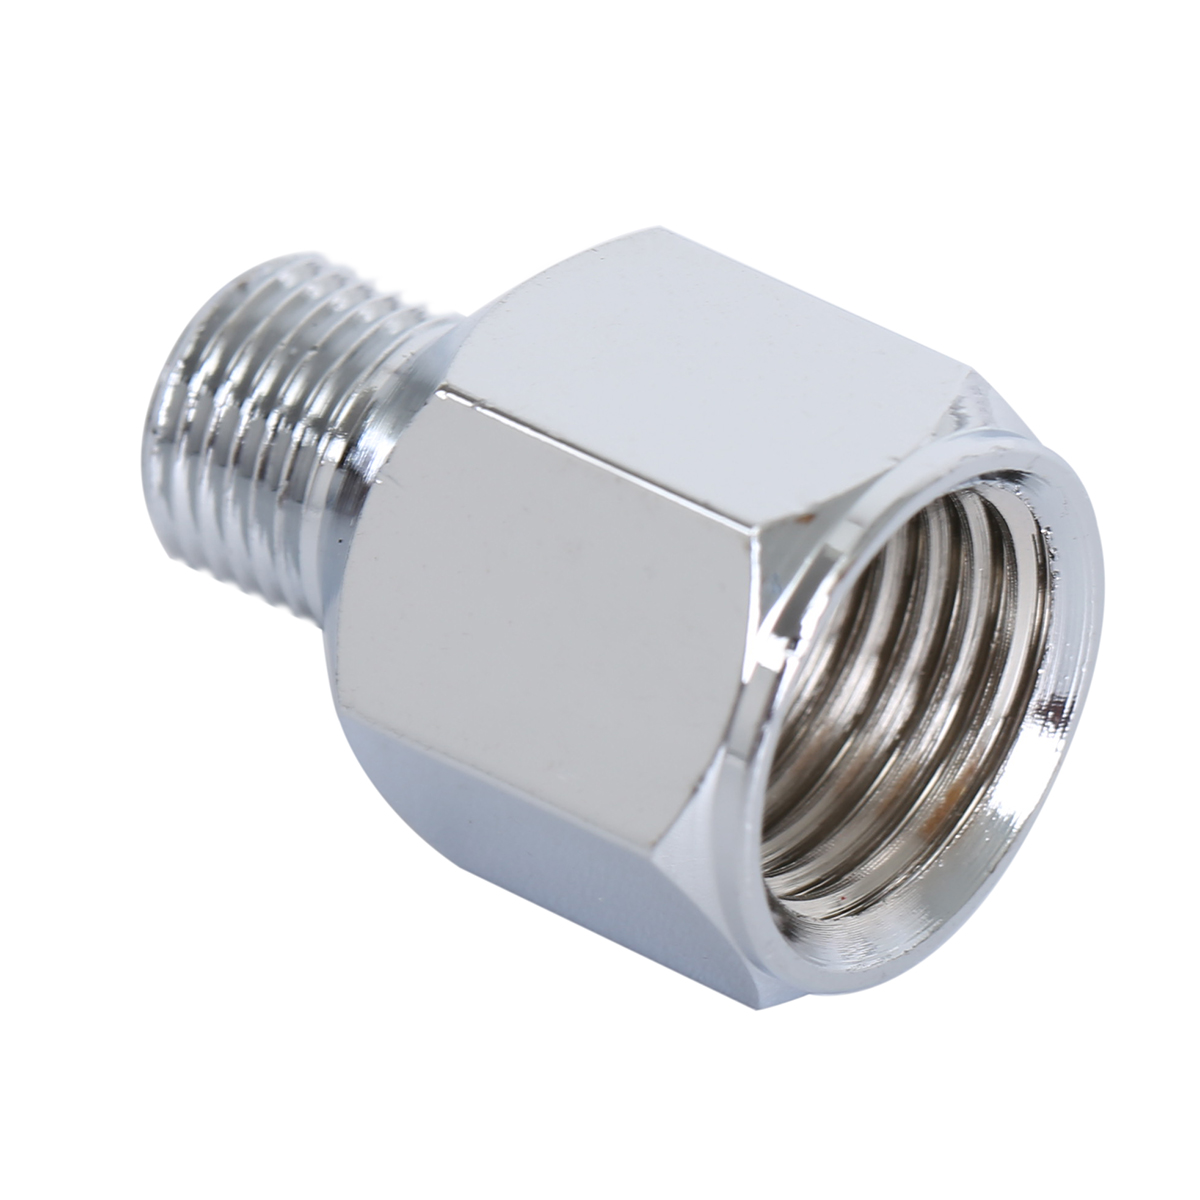 1x Mini Airbrush Air Hose Adapter Connector 1/4 BSP Female To 1/8 BSP Male Spray Gun Air Hose Quick Coupler Adaptor